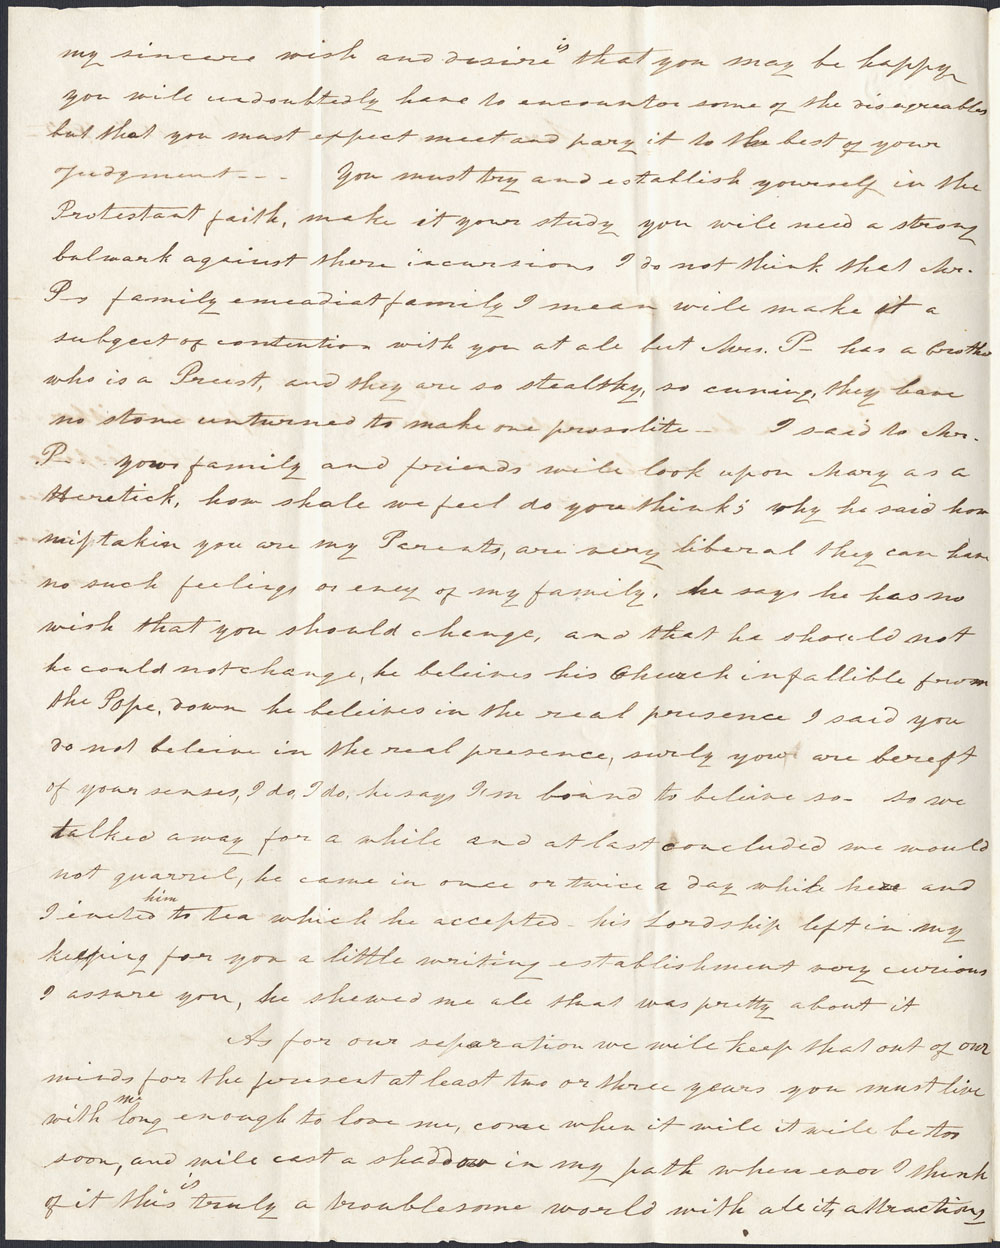 [Correspondance de Mary Westcott] 1845 . (item 6)